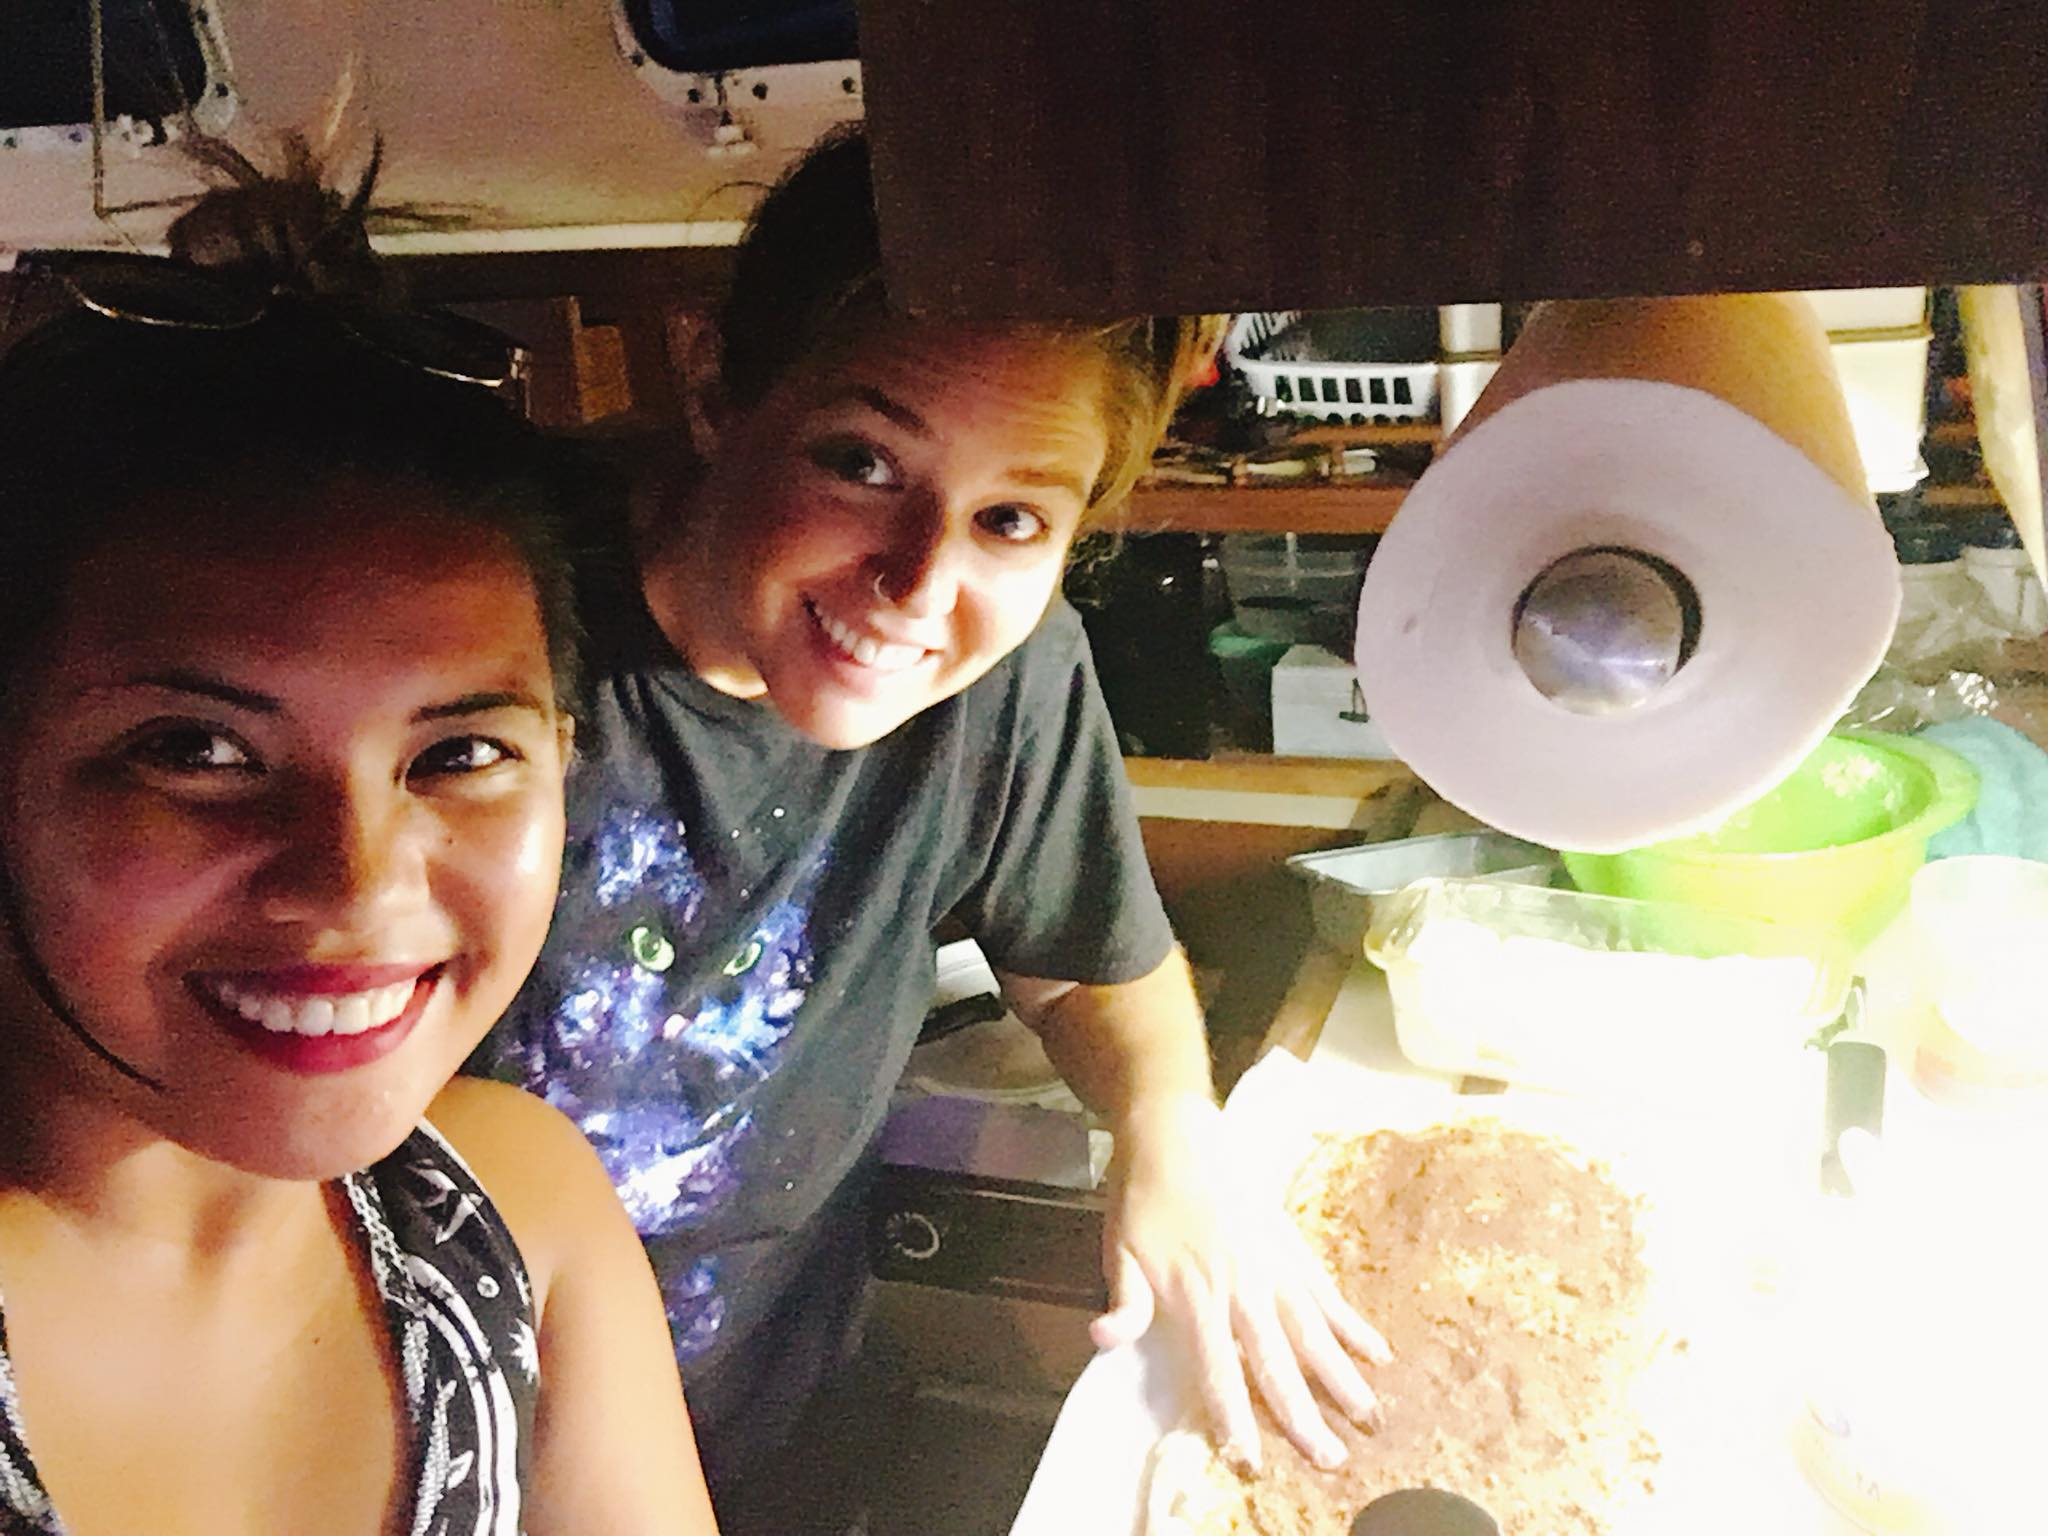 Sailing Life Day 76: Learning how to make homemade bread on the boat! 🤗